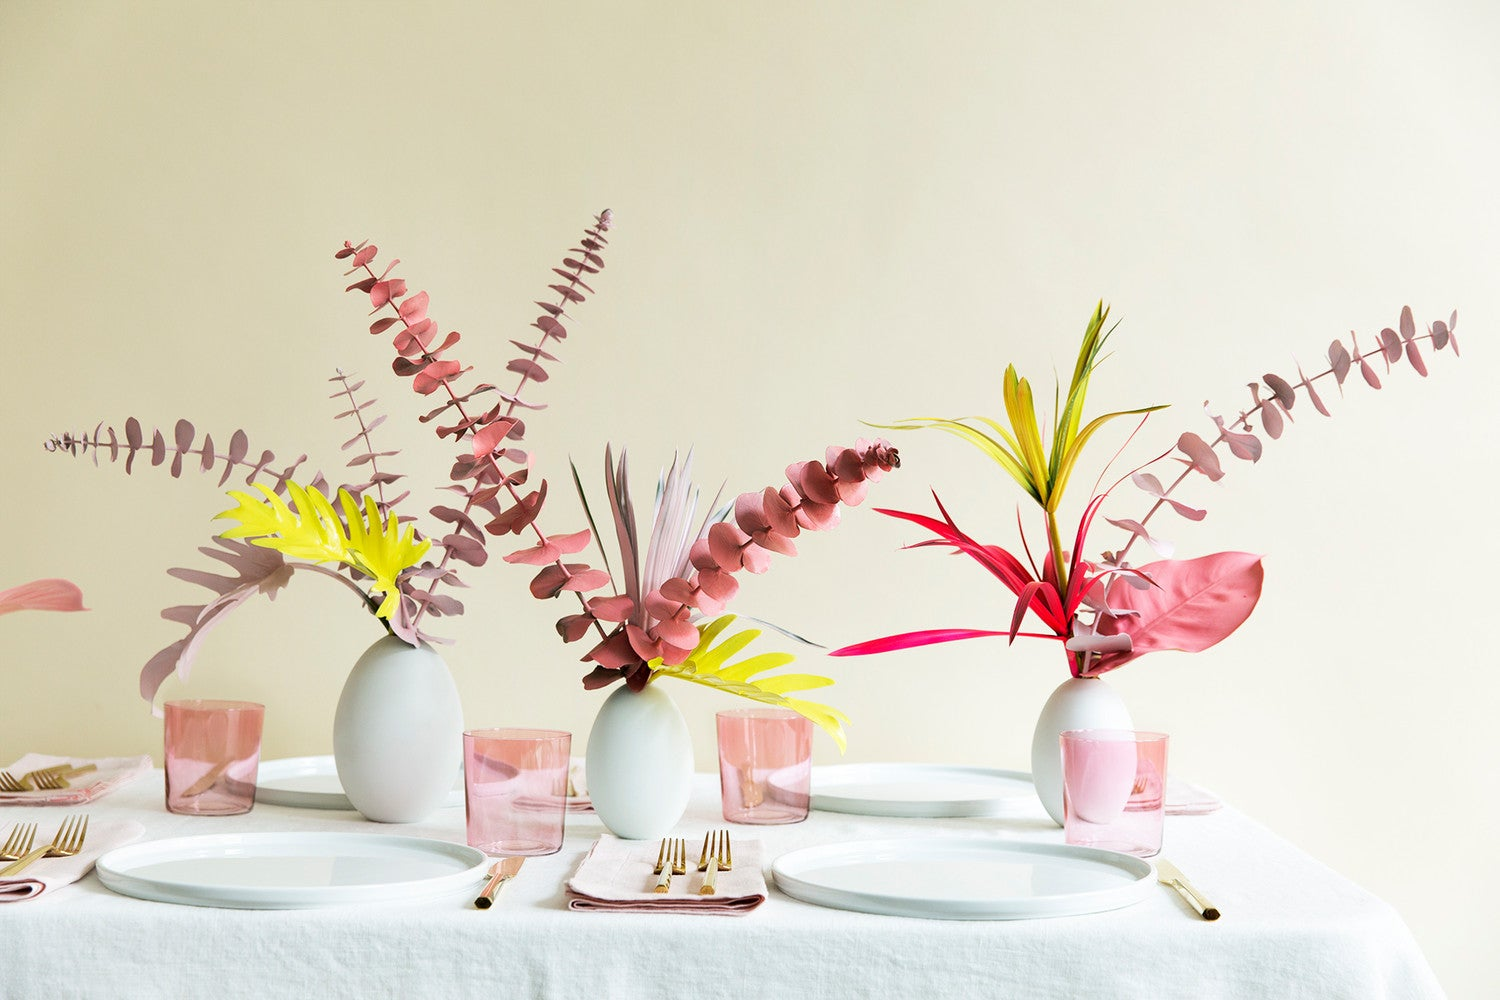 Non-Traditional Thanksgiving Centerpiece Ideas That Are Anything But Ordinary